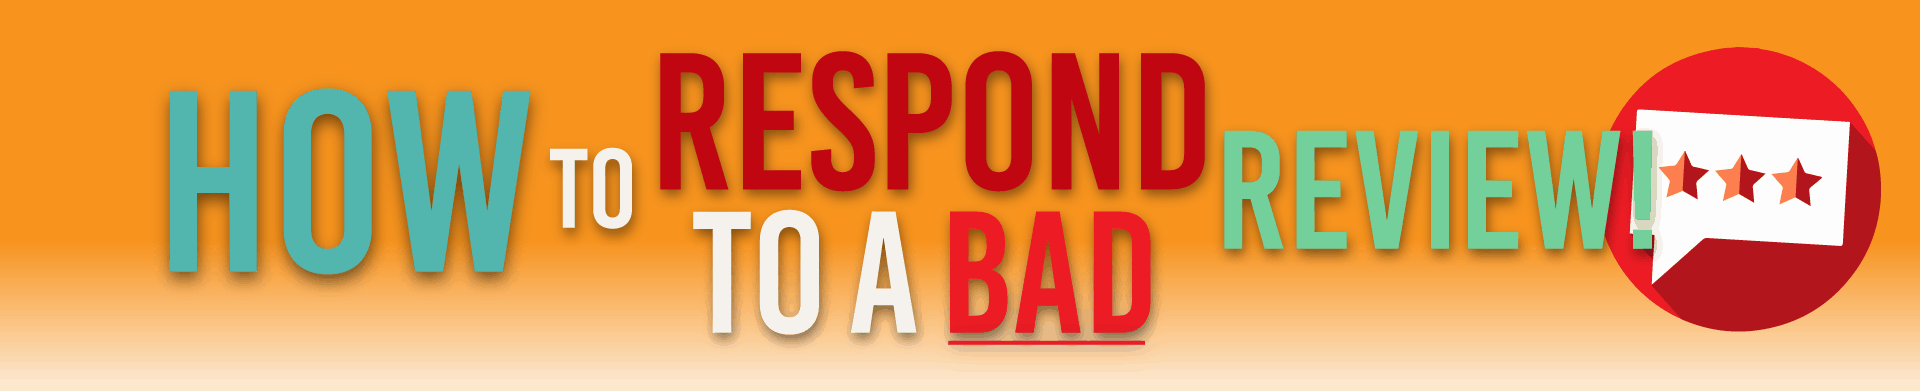 Reputation Management - How to respond to a bad review